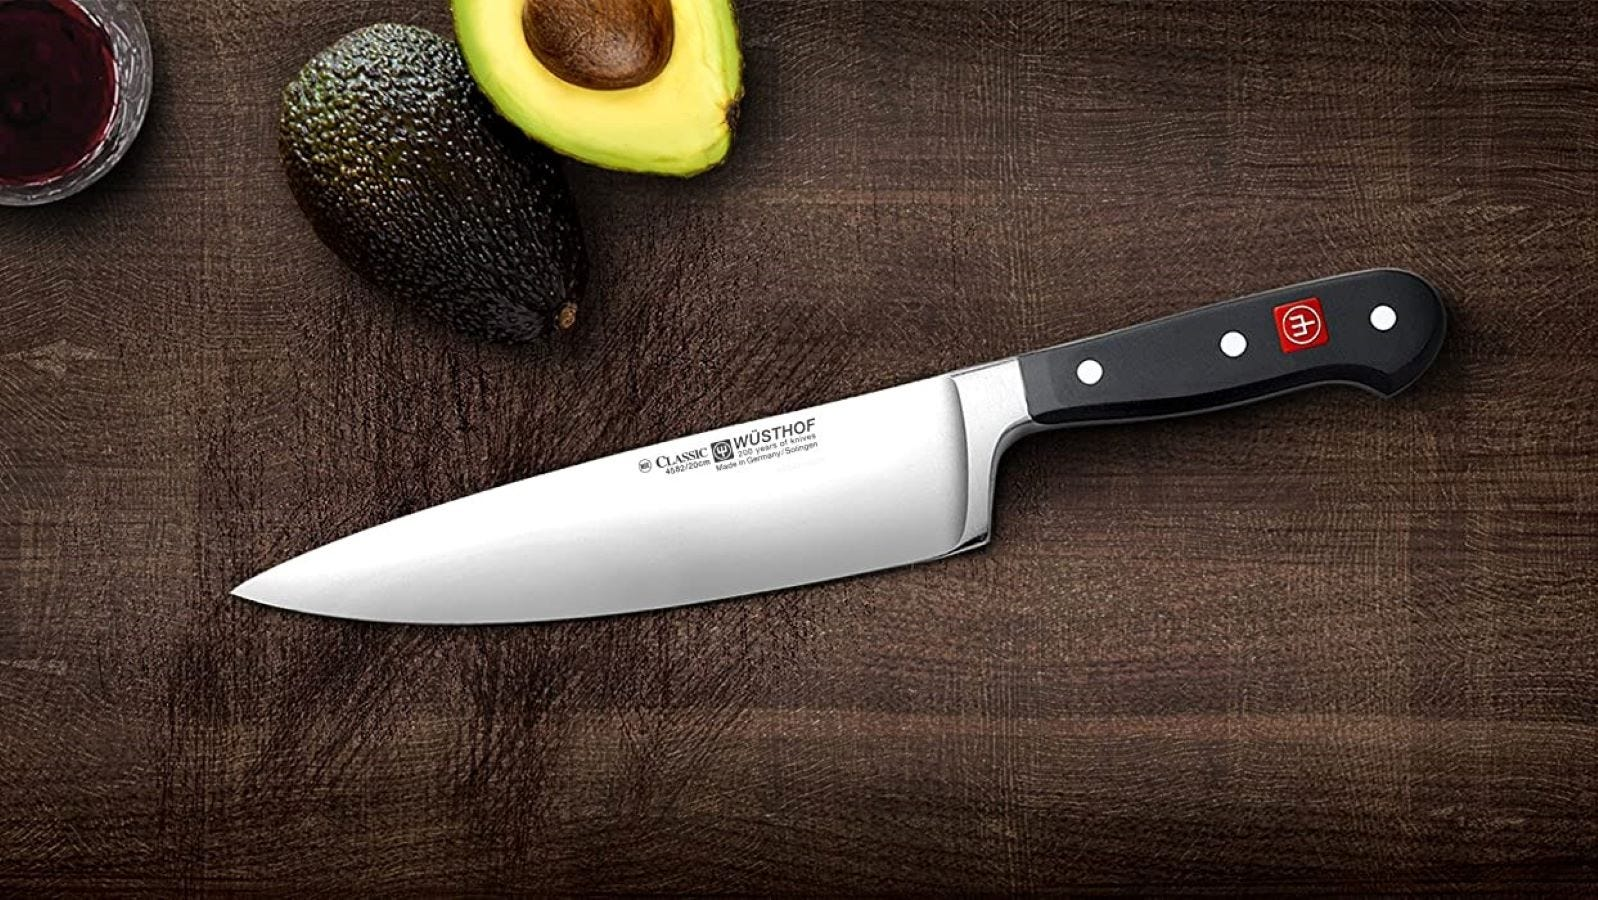 The WÜSTHOF Classic Eight-Inch Chef's Knife